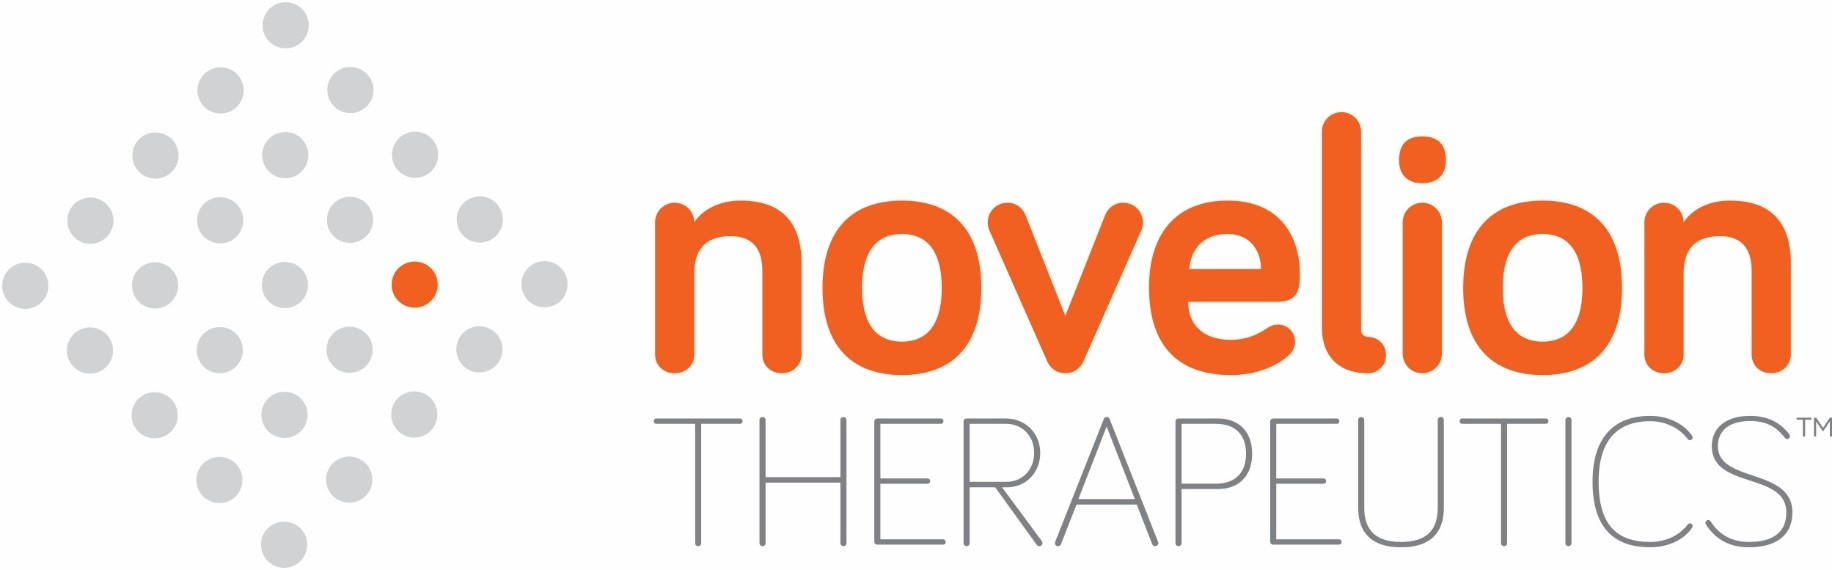 Novelion Therapeutics Provides Updates on Voluntary Liquidation and Other Matters